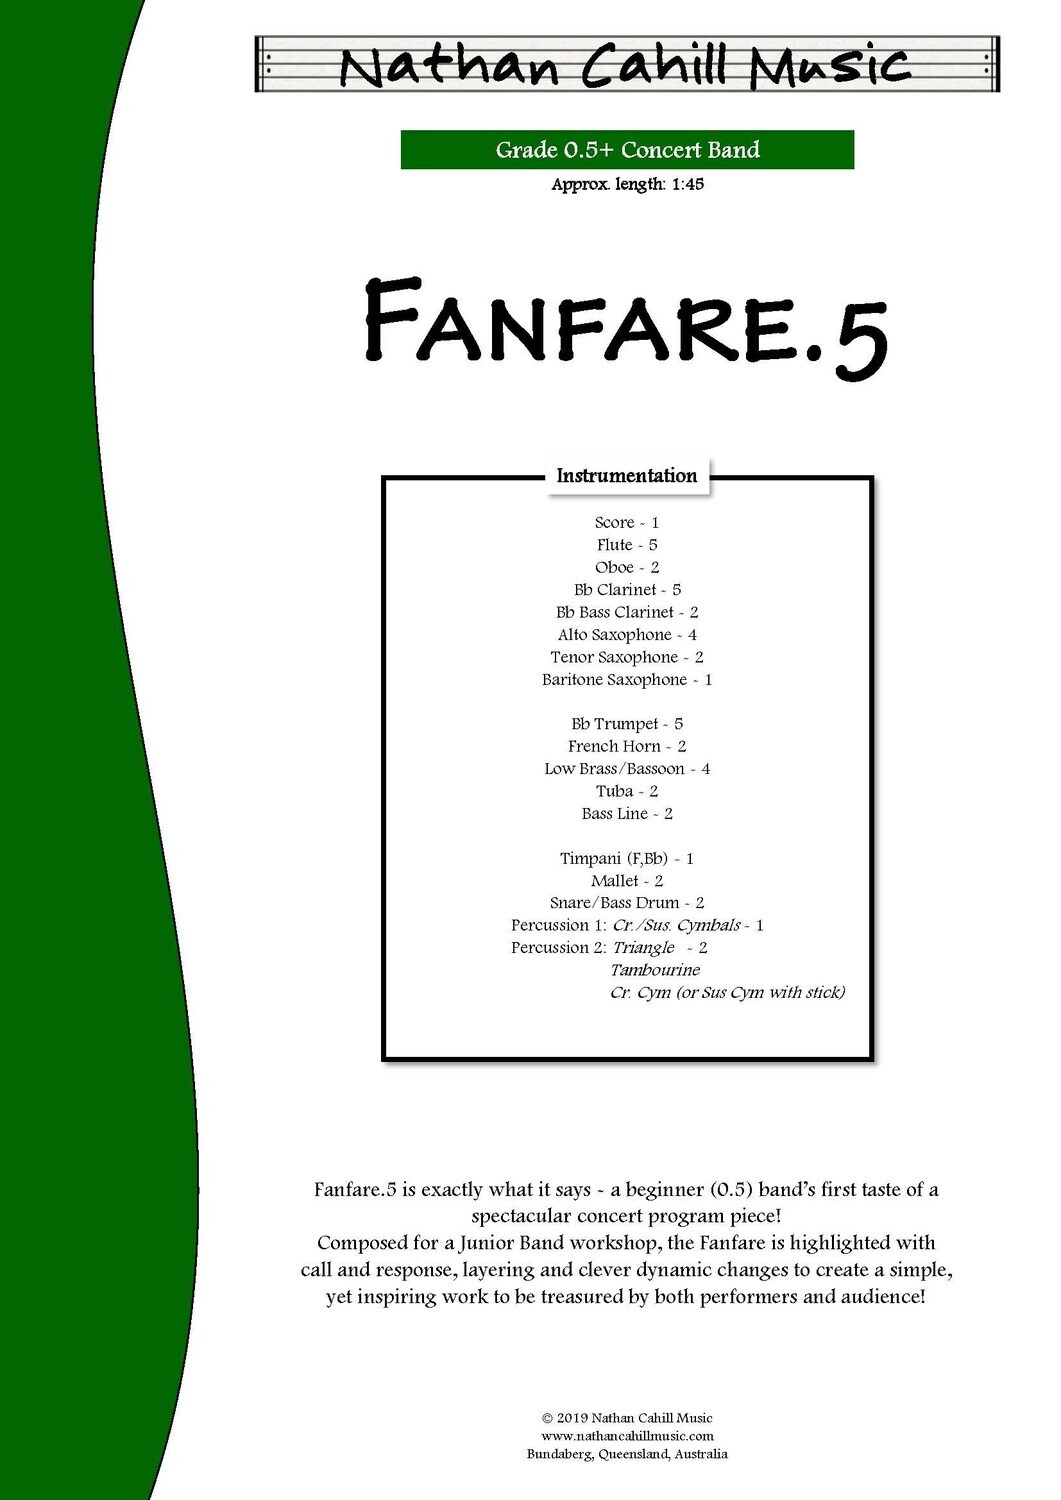 Fanfare.5 - Level 0.5 Concert Band